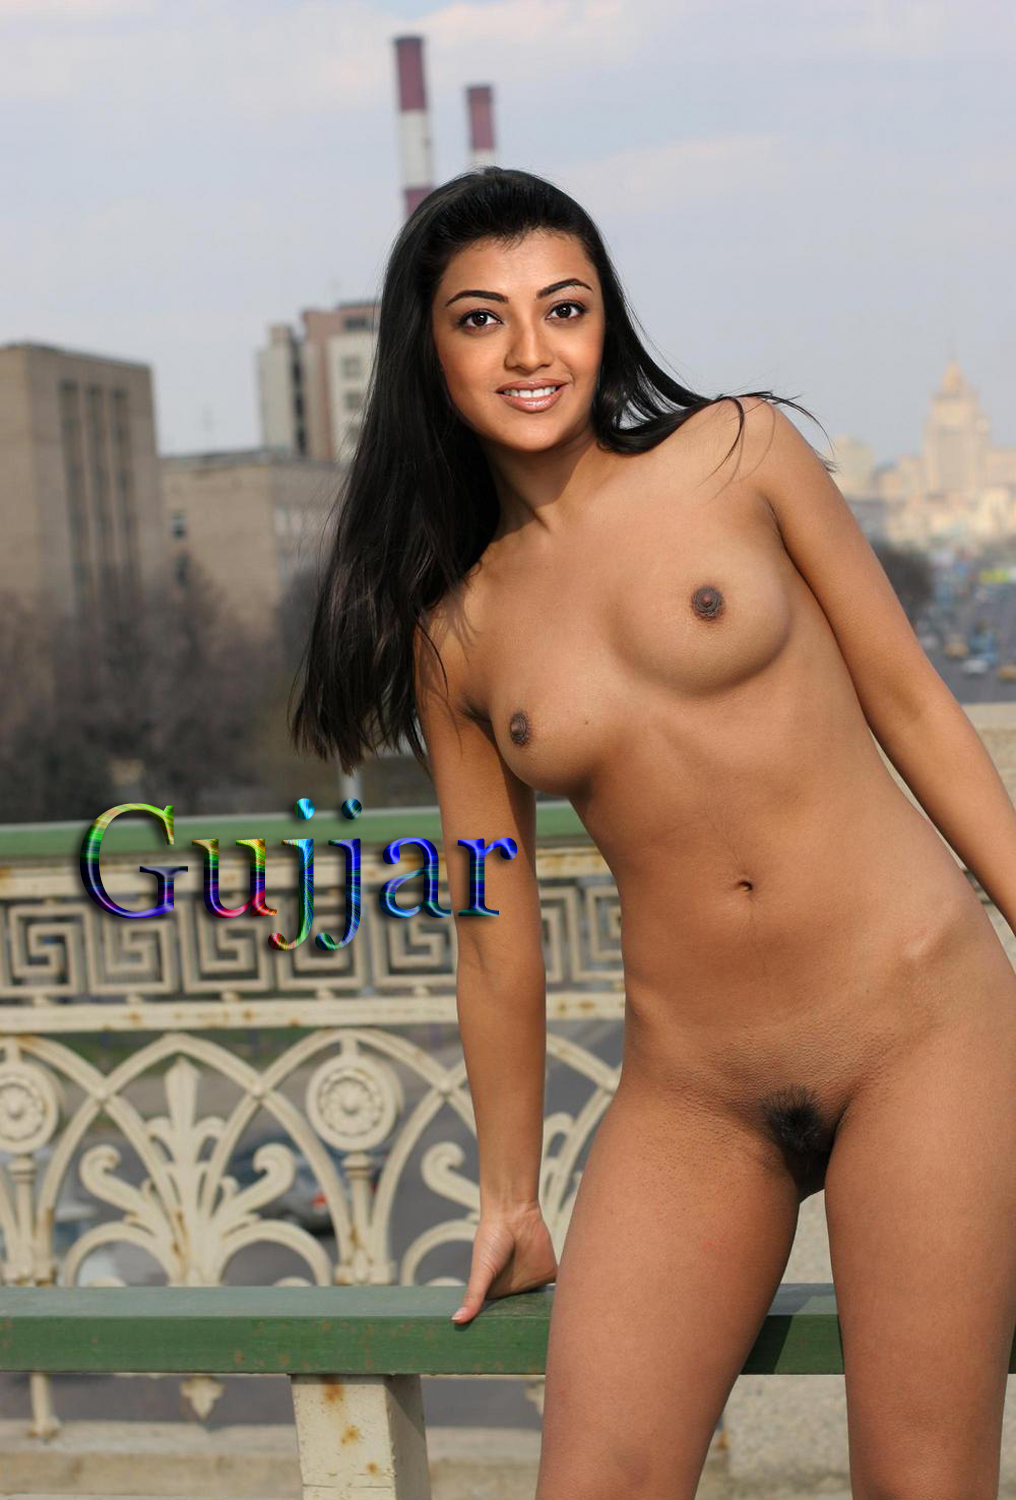 Nude Sports Girls Sunny Leon Indian In Bikini